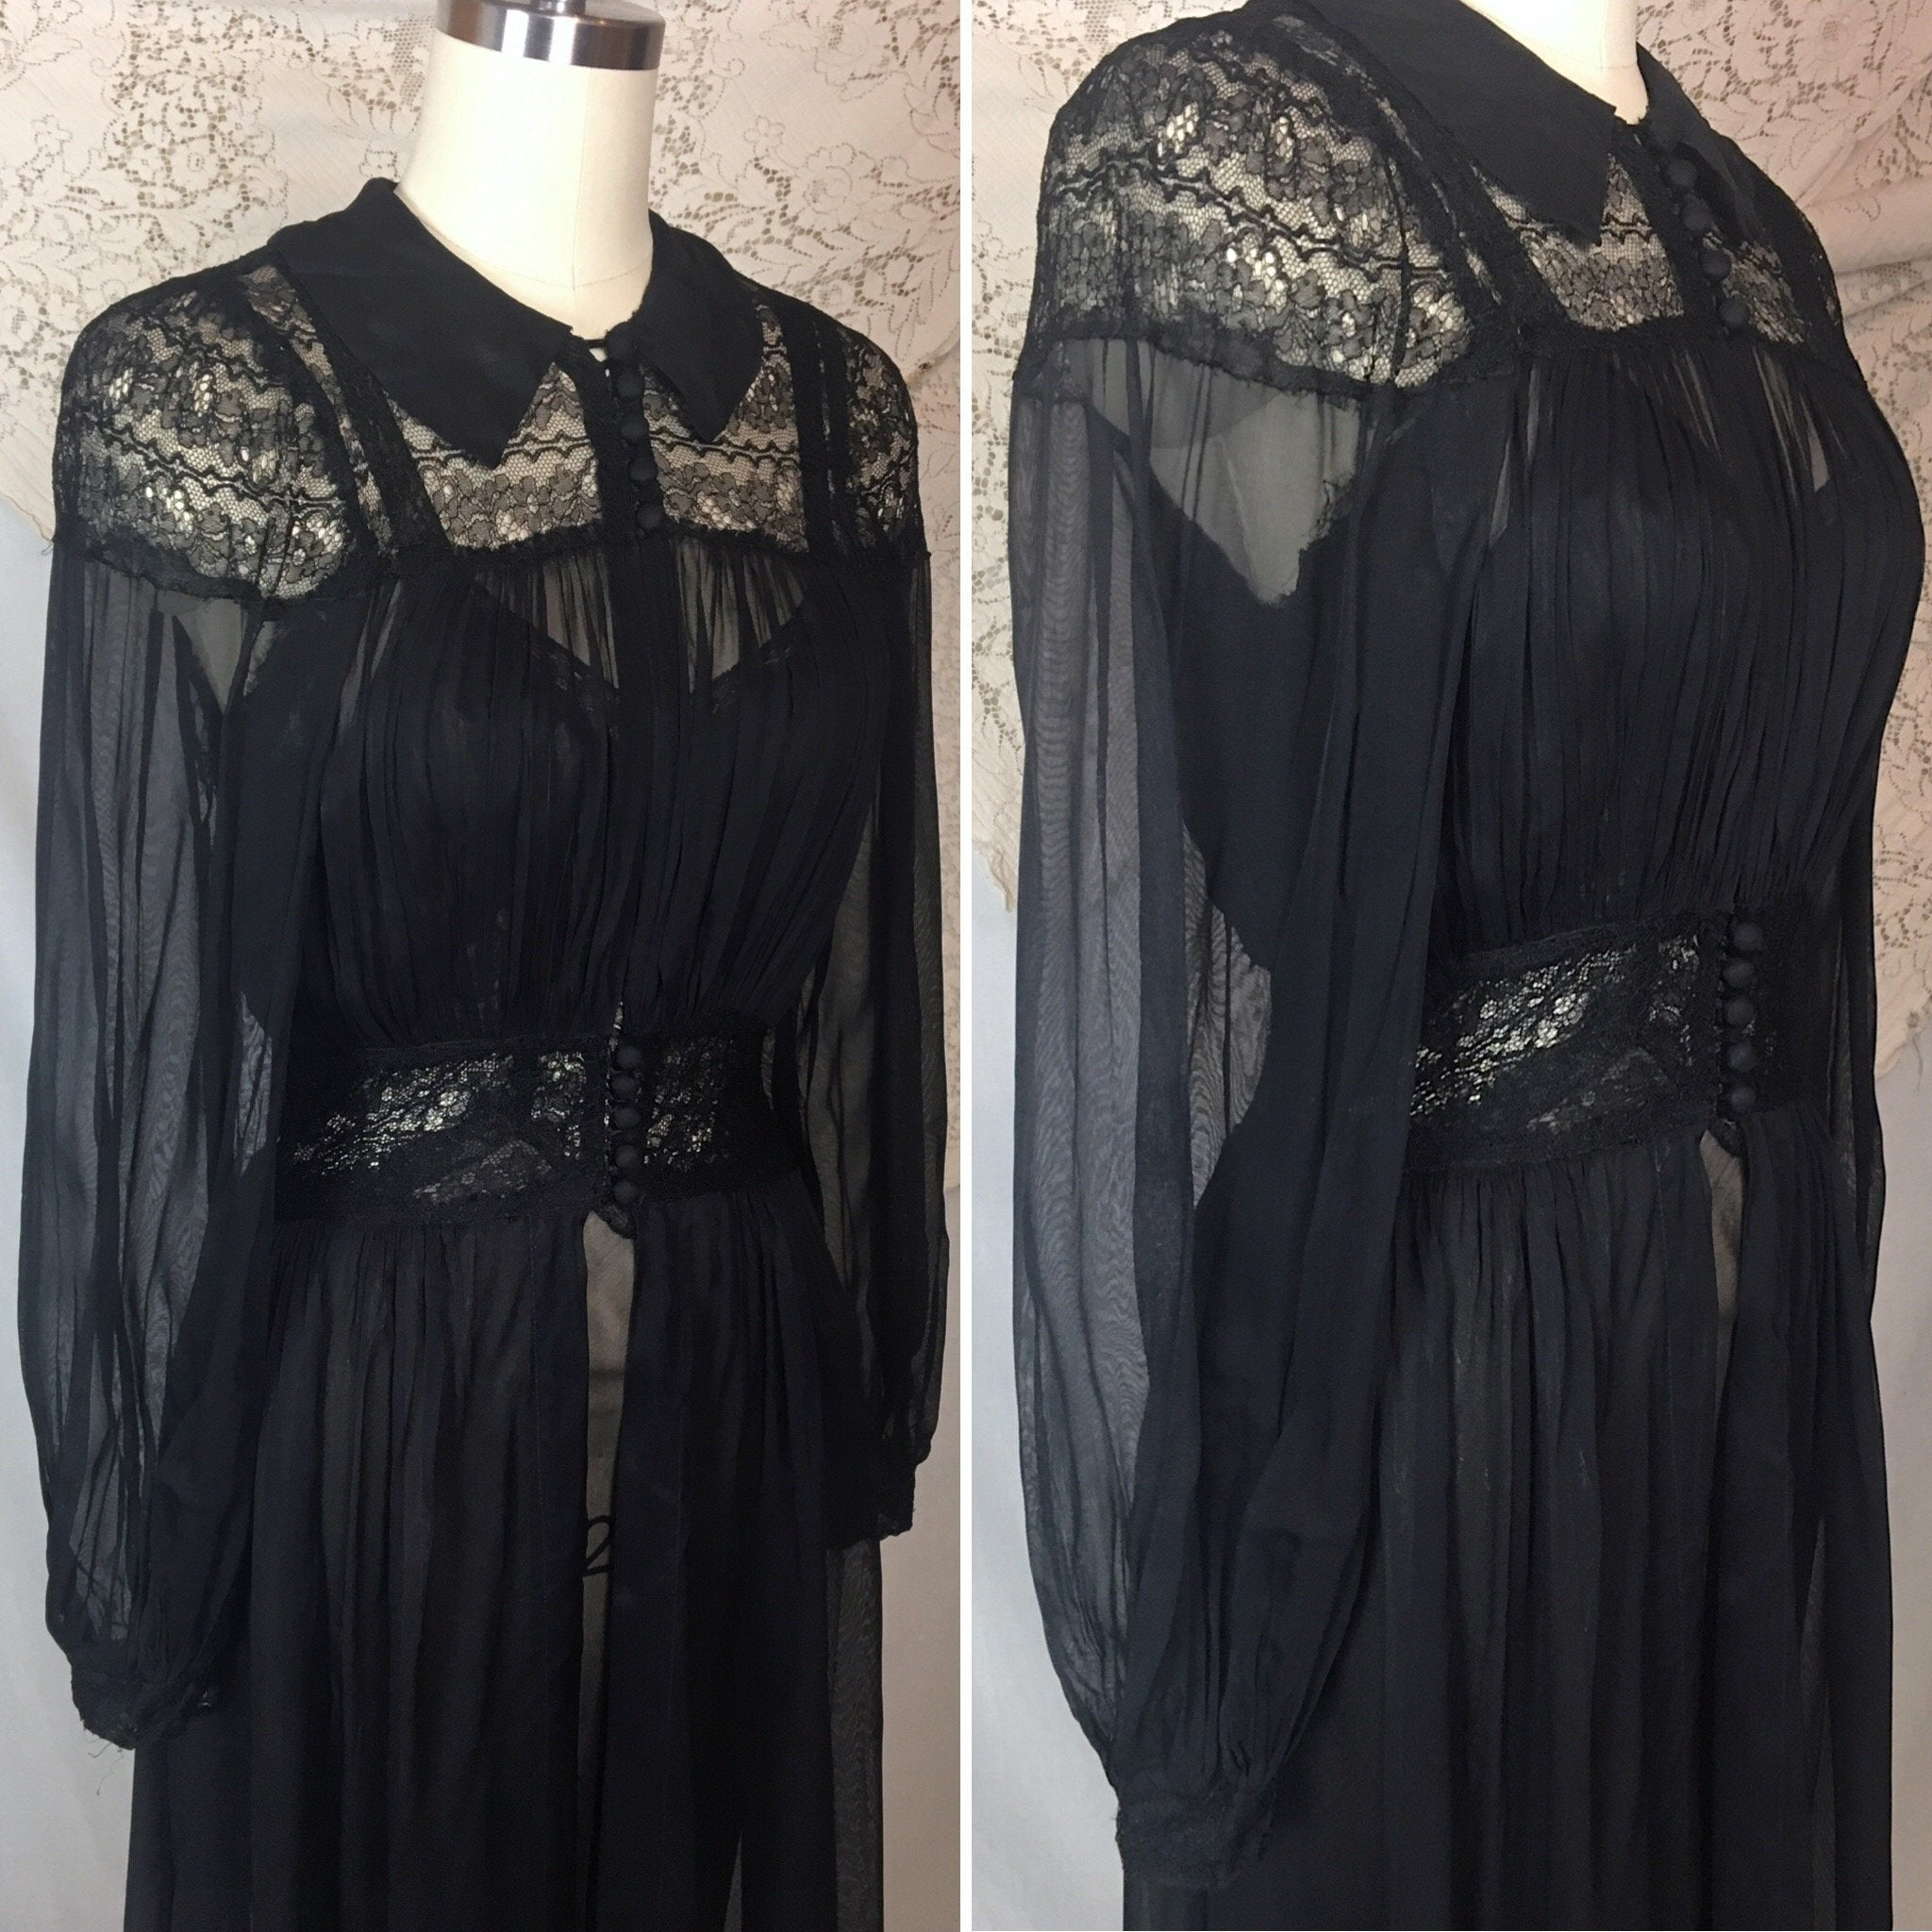 Vintage 1940's Peignoir Set | Sheer Black Rayon Chiffon with Chantilly Lace Nightgown & Robe | Size XS - Daggers & Dames